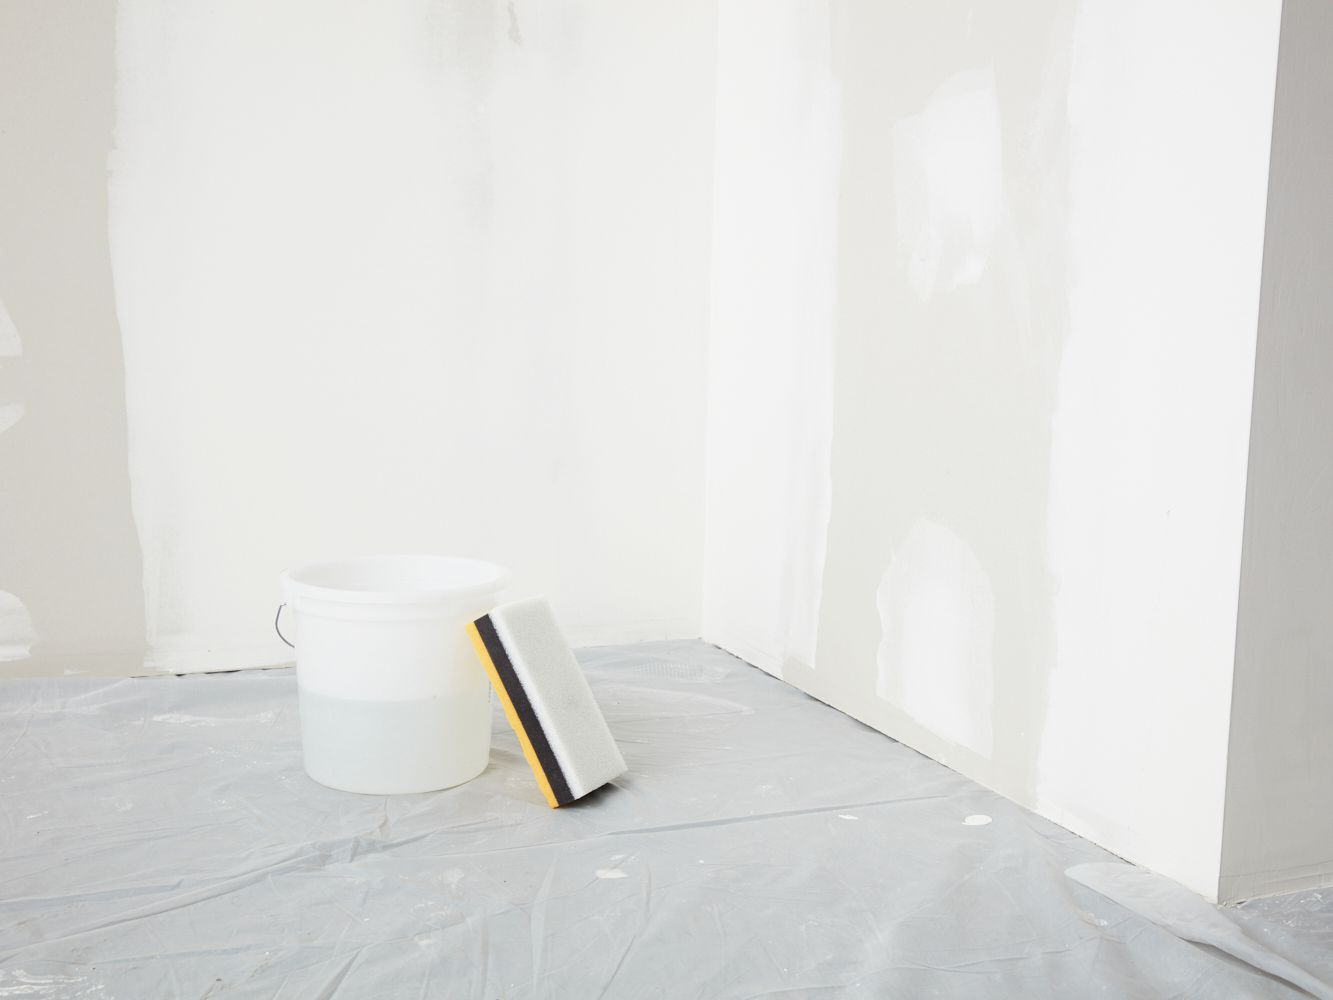 How To Wet Sand Drywall Avoid Dust